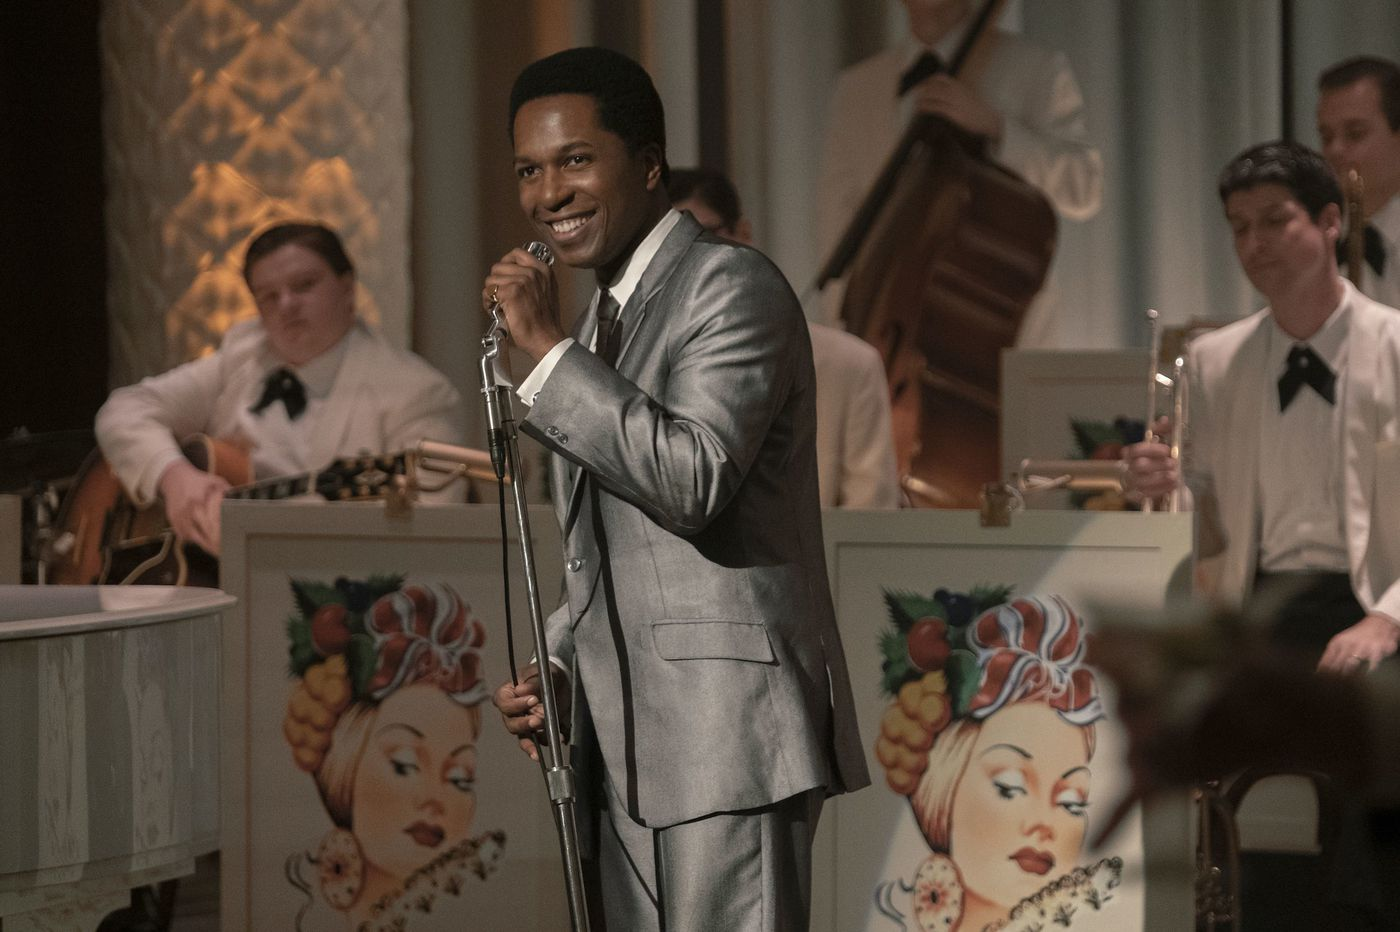 Philly's Leslie Odom Jr. won't brag, but he steals the show as Sam Cooke in 'Miami'